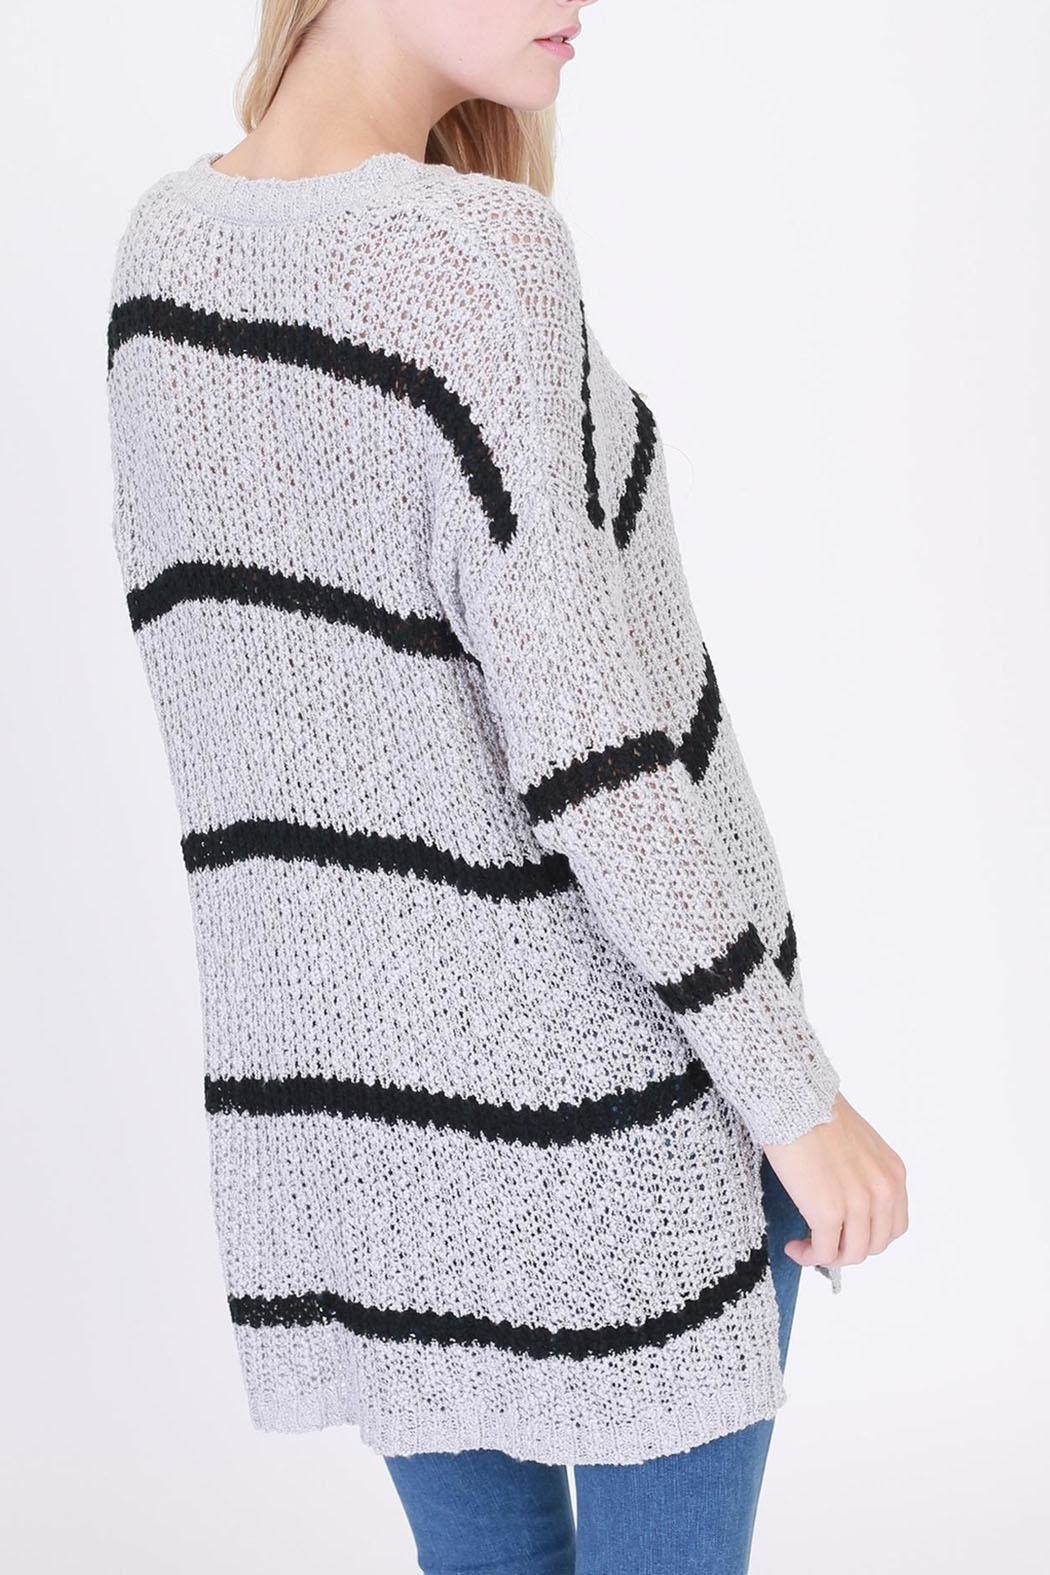 HYFVE Striped Pocketed Sweater - Side Cropped Image